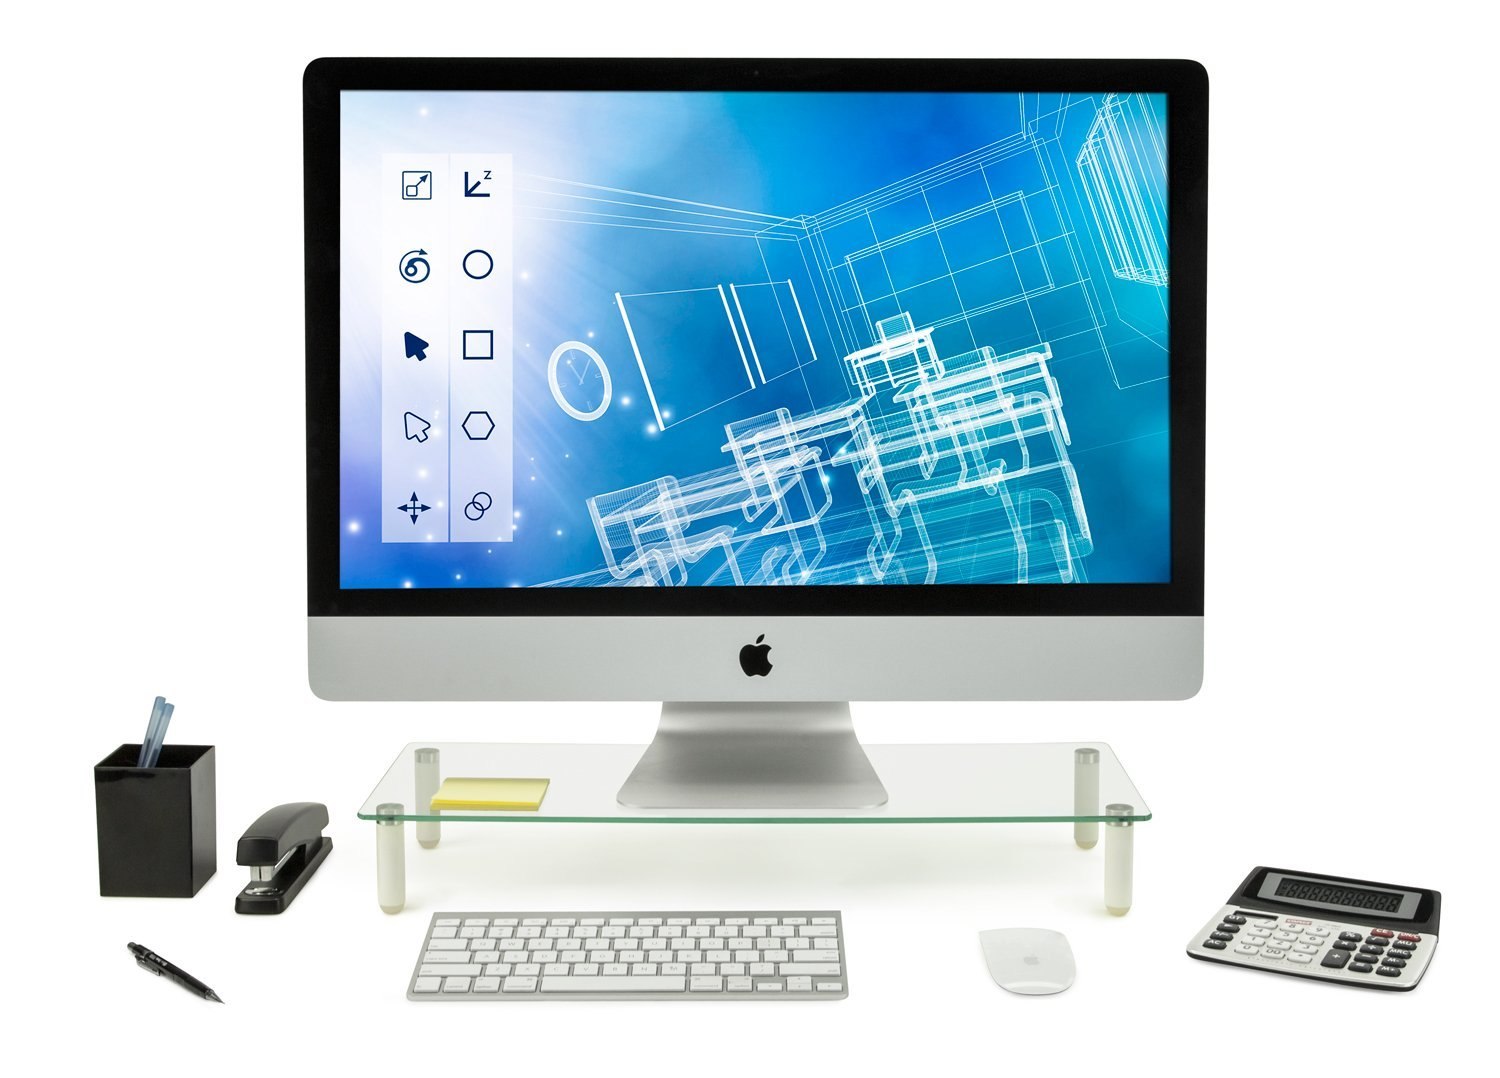 Mount It Glass Monitor Stand Notebook Ergonomic Desk Riser And Organizer 22 Inches Wide Tempered 44 Lb Carrying Capacity Com